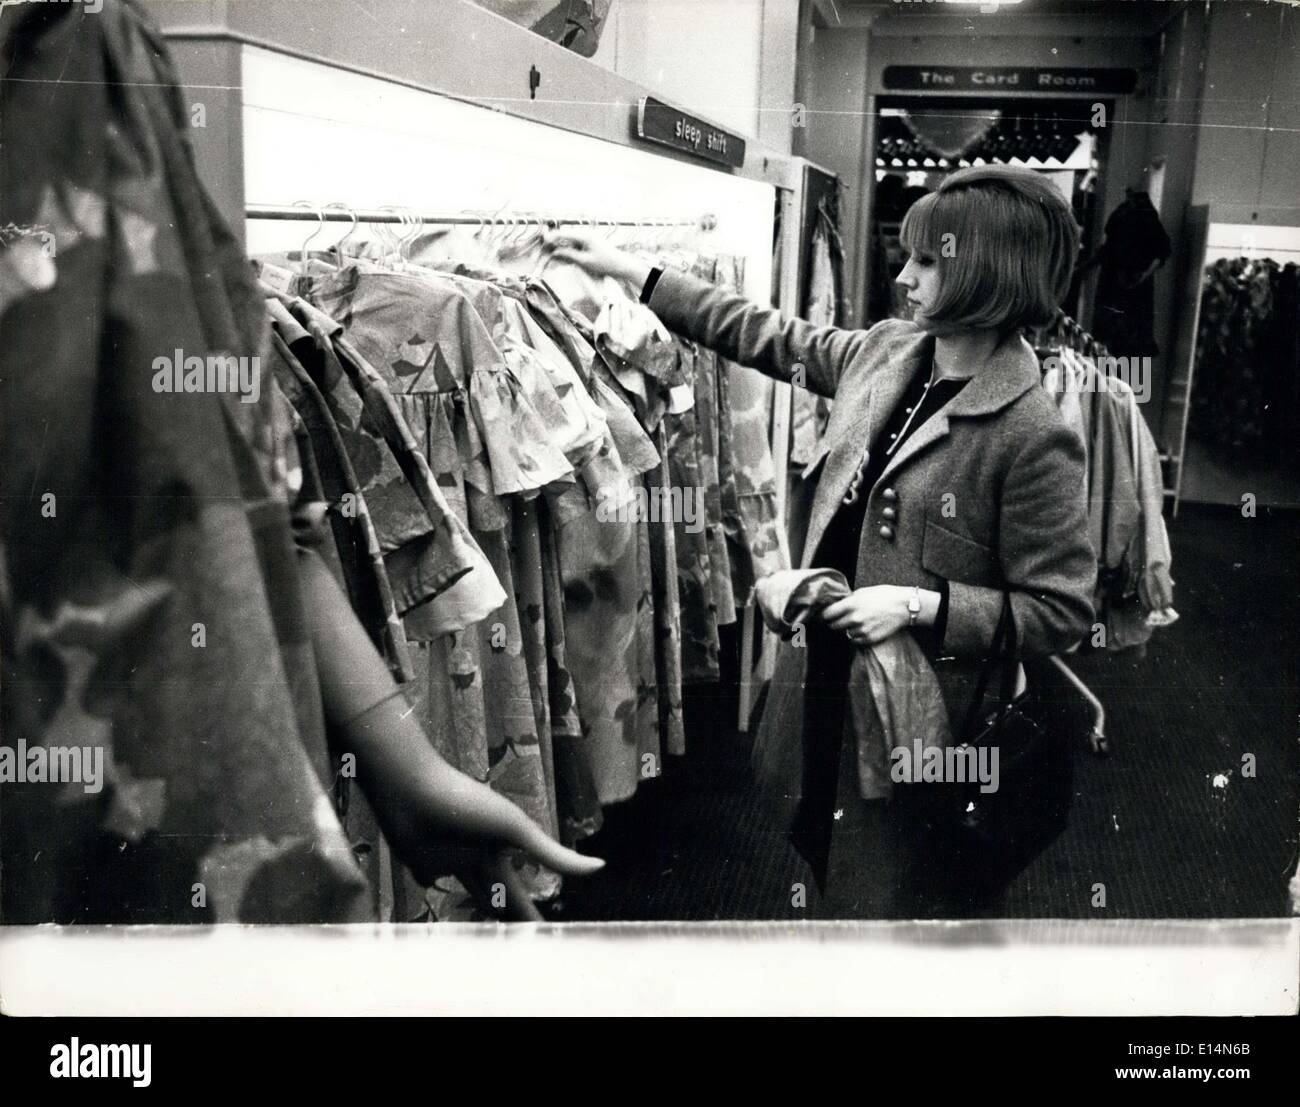 Apr. 05, 2012 - Mods / Rockers Carnaby St - Stock Image